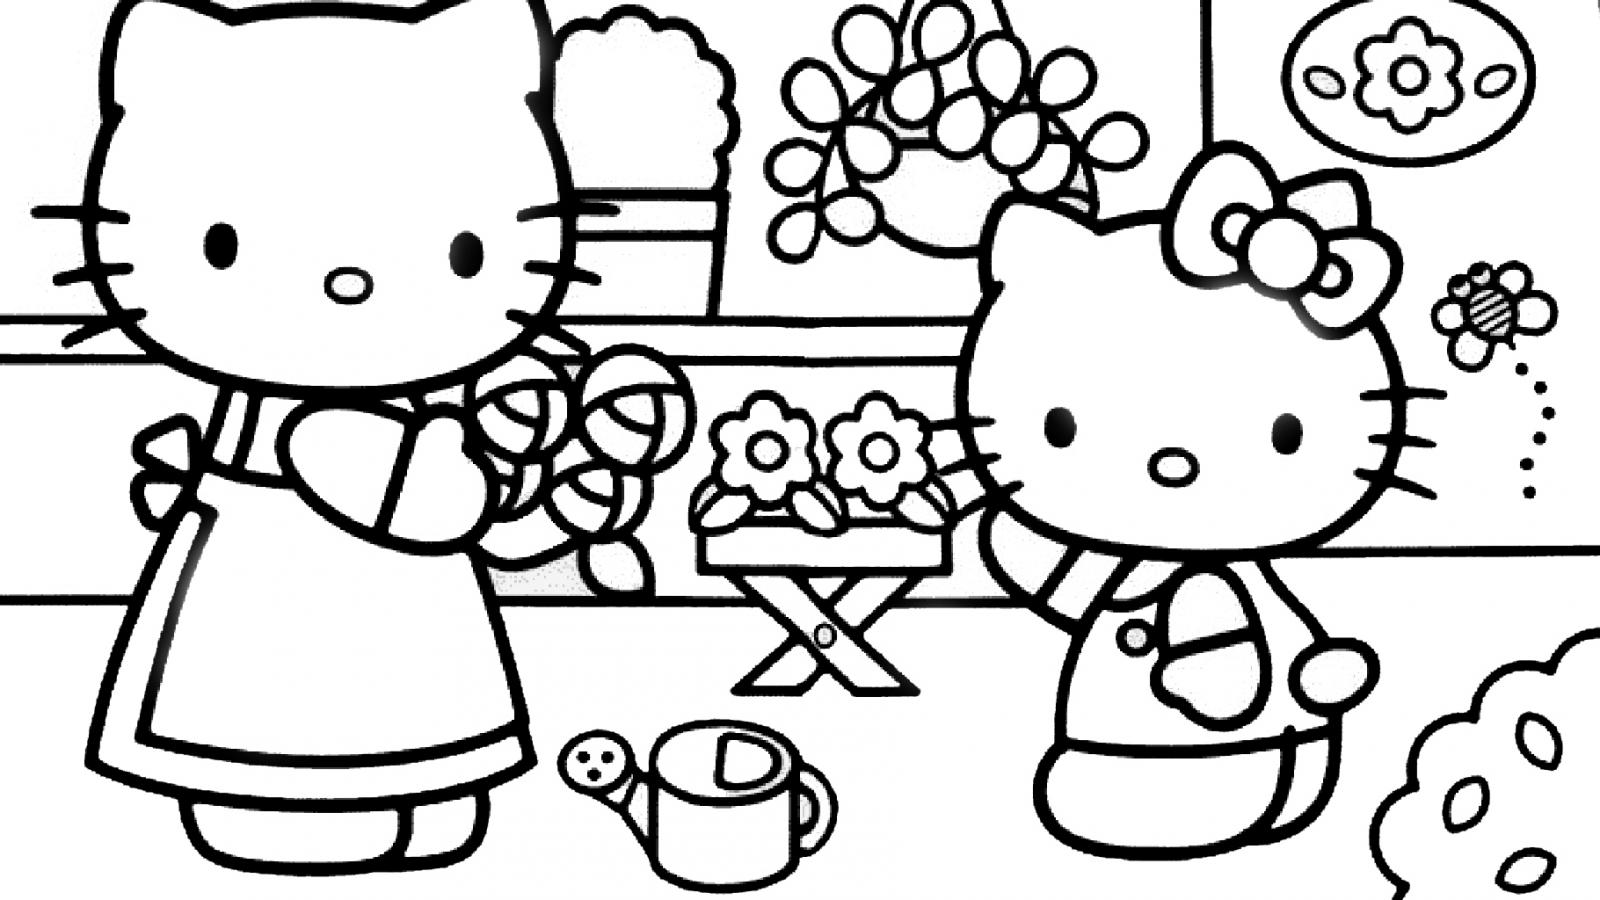 hello kitty coloring pages wallpapers for ipad   Hello Kitty Coloring Pages 05 of 15 - In the Garden with ...